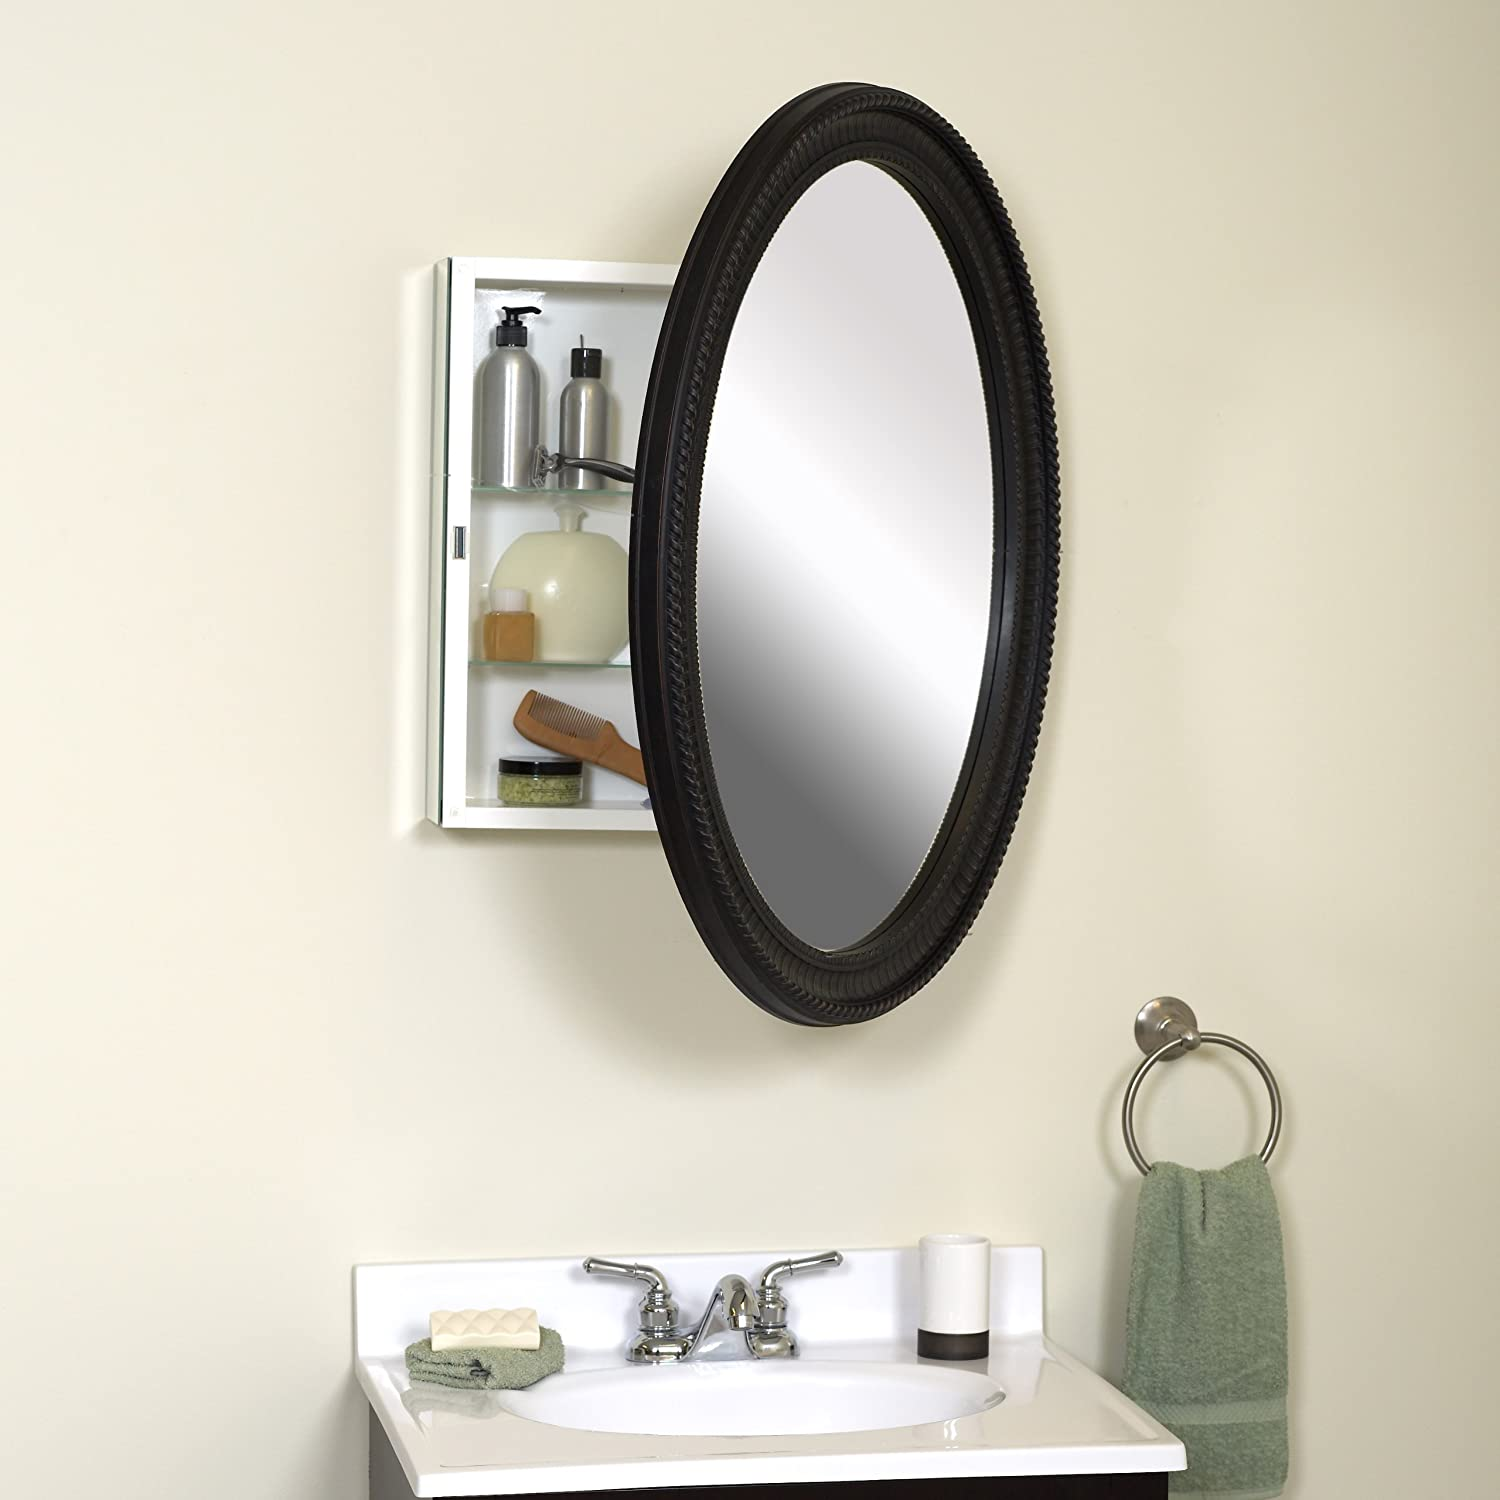 bathroom medicine cabinets with mirror. Amazon.com: Zenith BMV2532BB, Oval Mirror Medicine Cabinet, Oil Rubbed Bronze Frame: Home \u0026 Kitchen Bathroom Cabinets With E